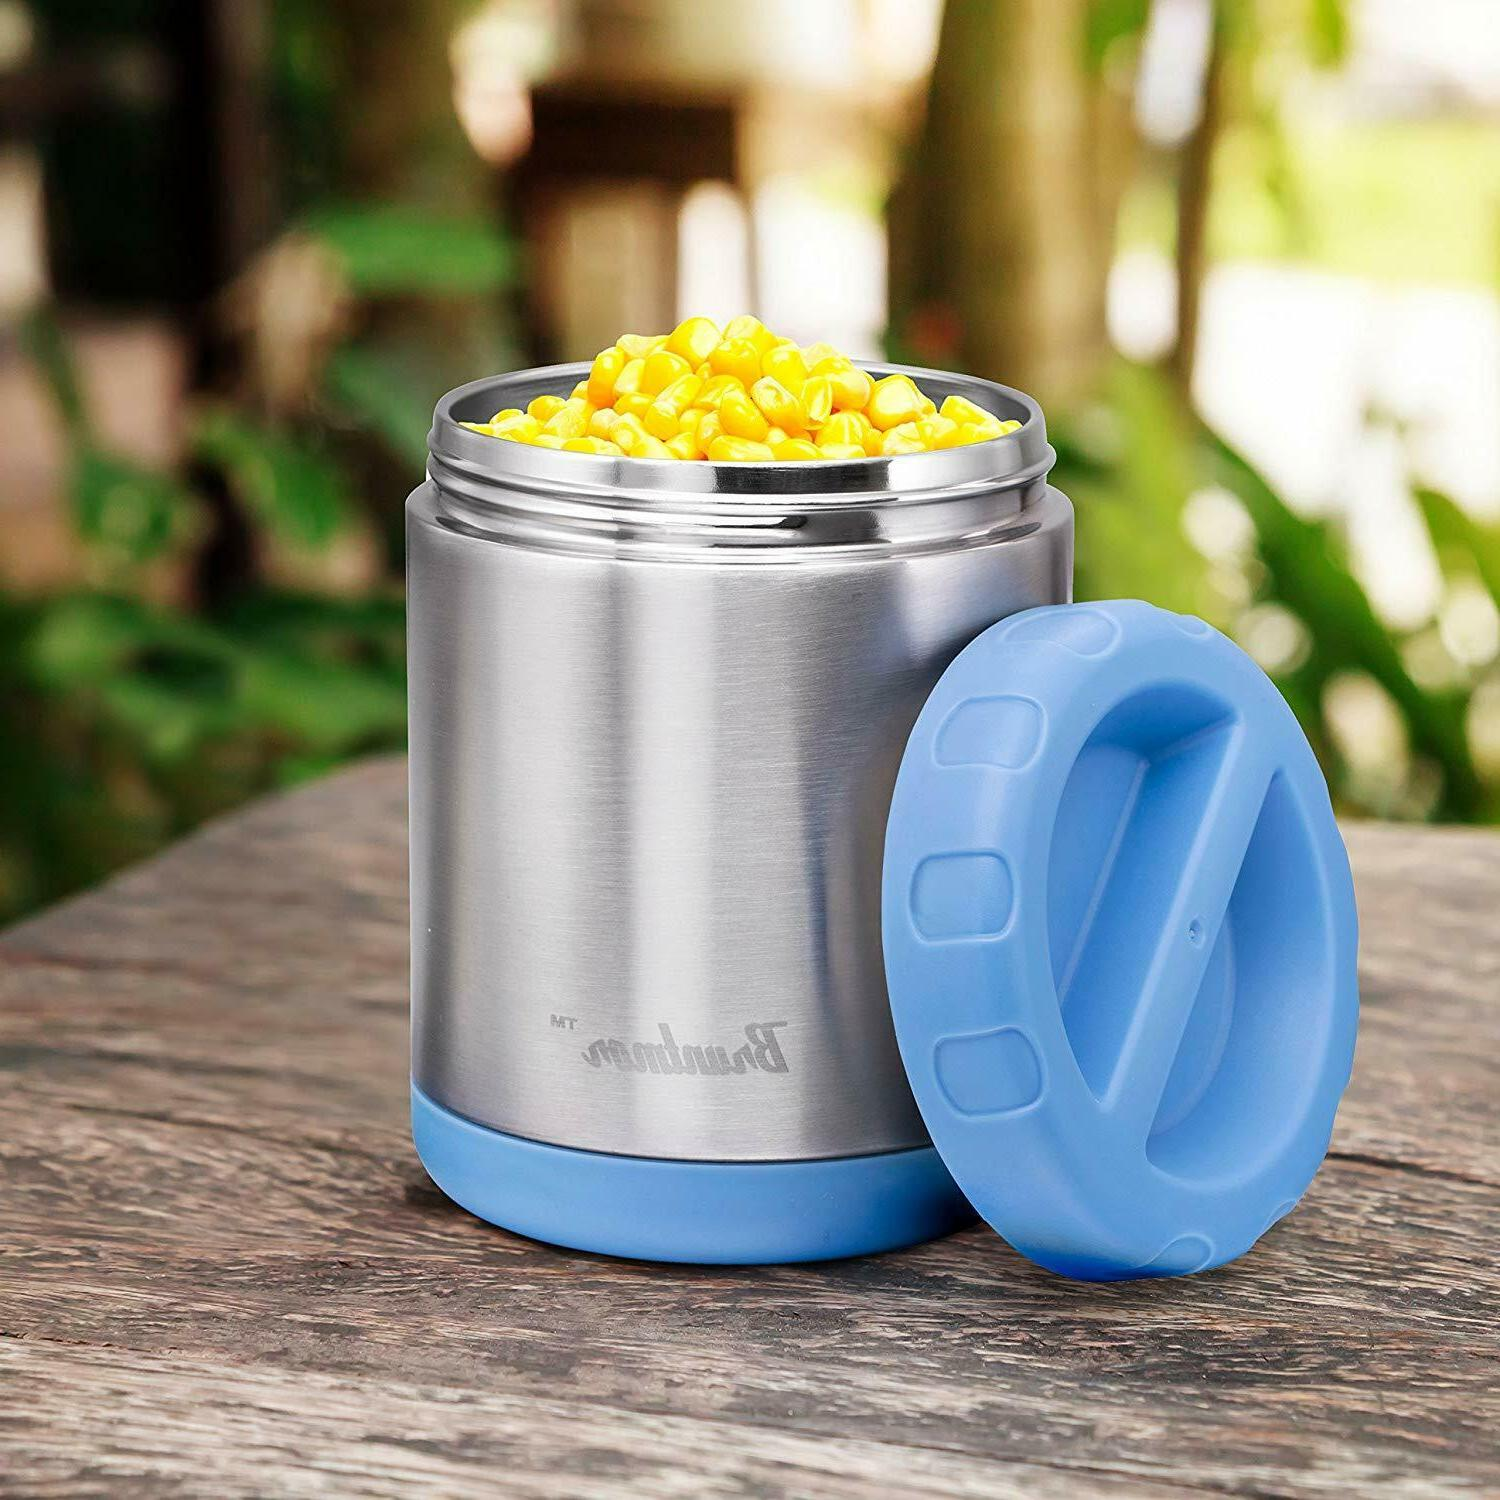 Bruntmor Jar Insulated Containers Proof